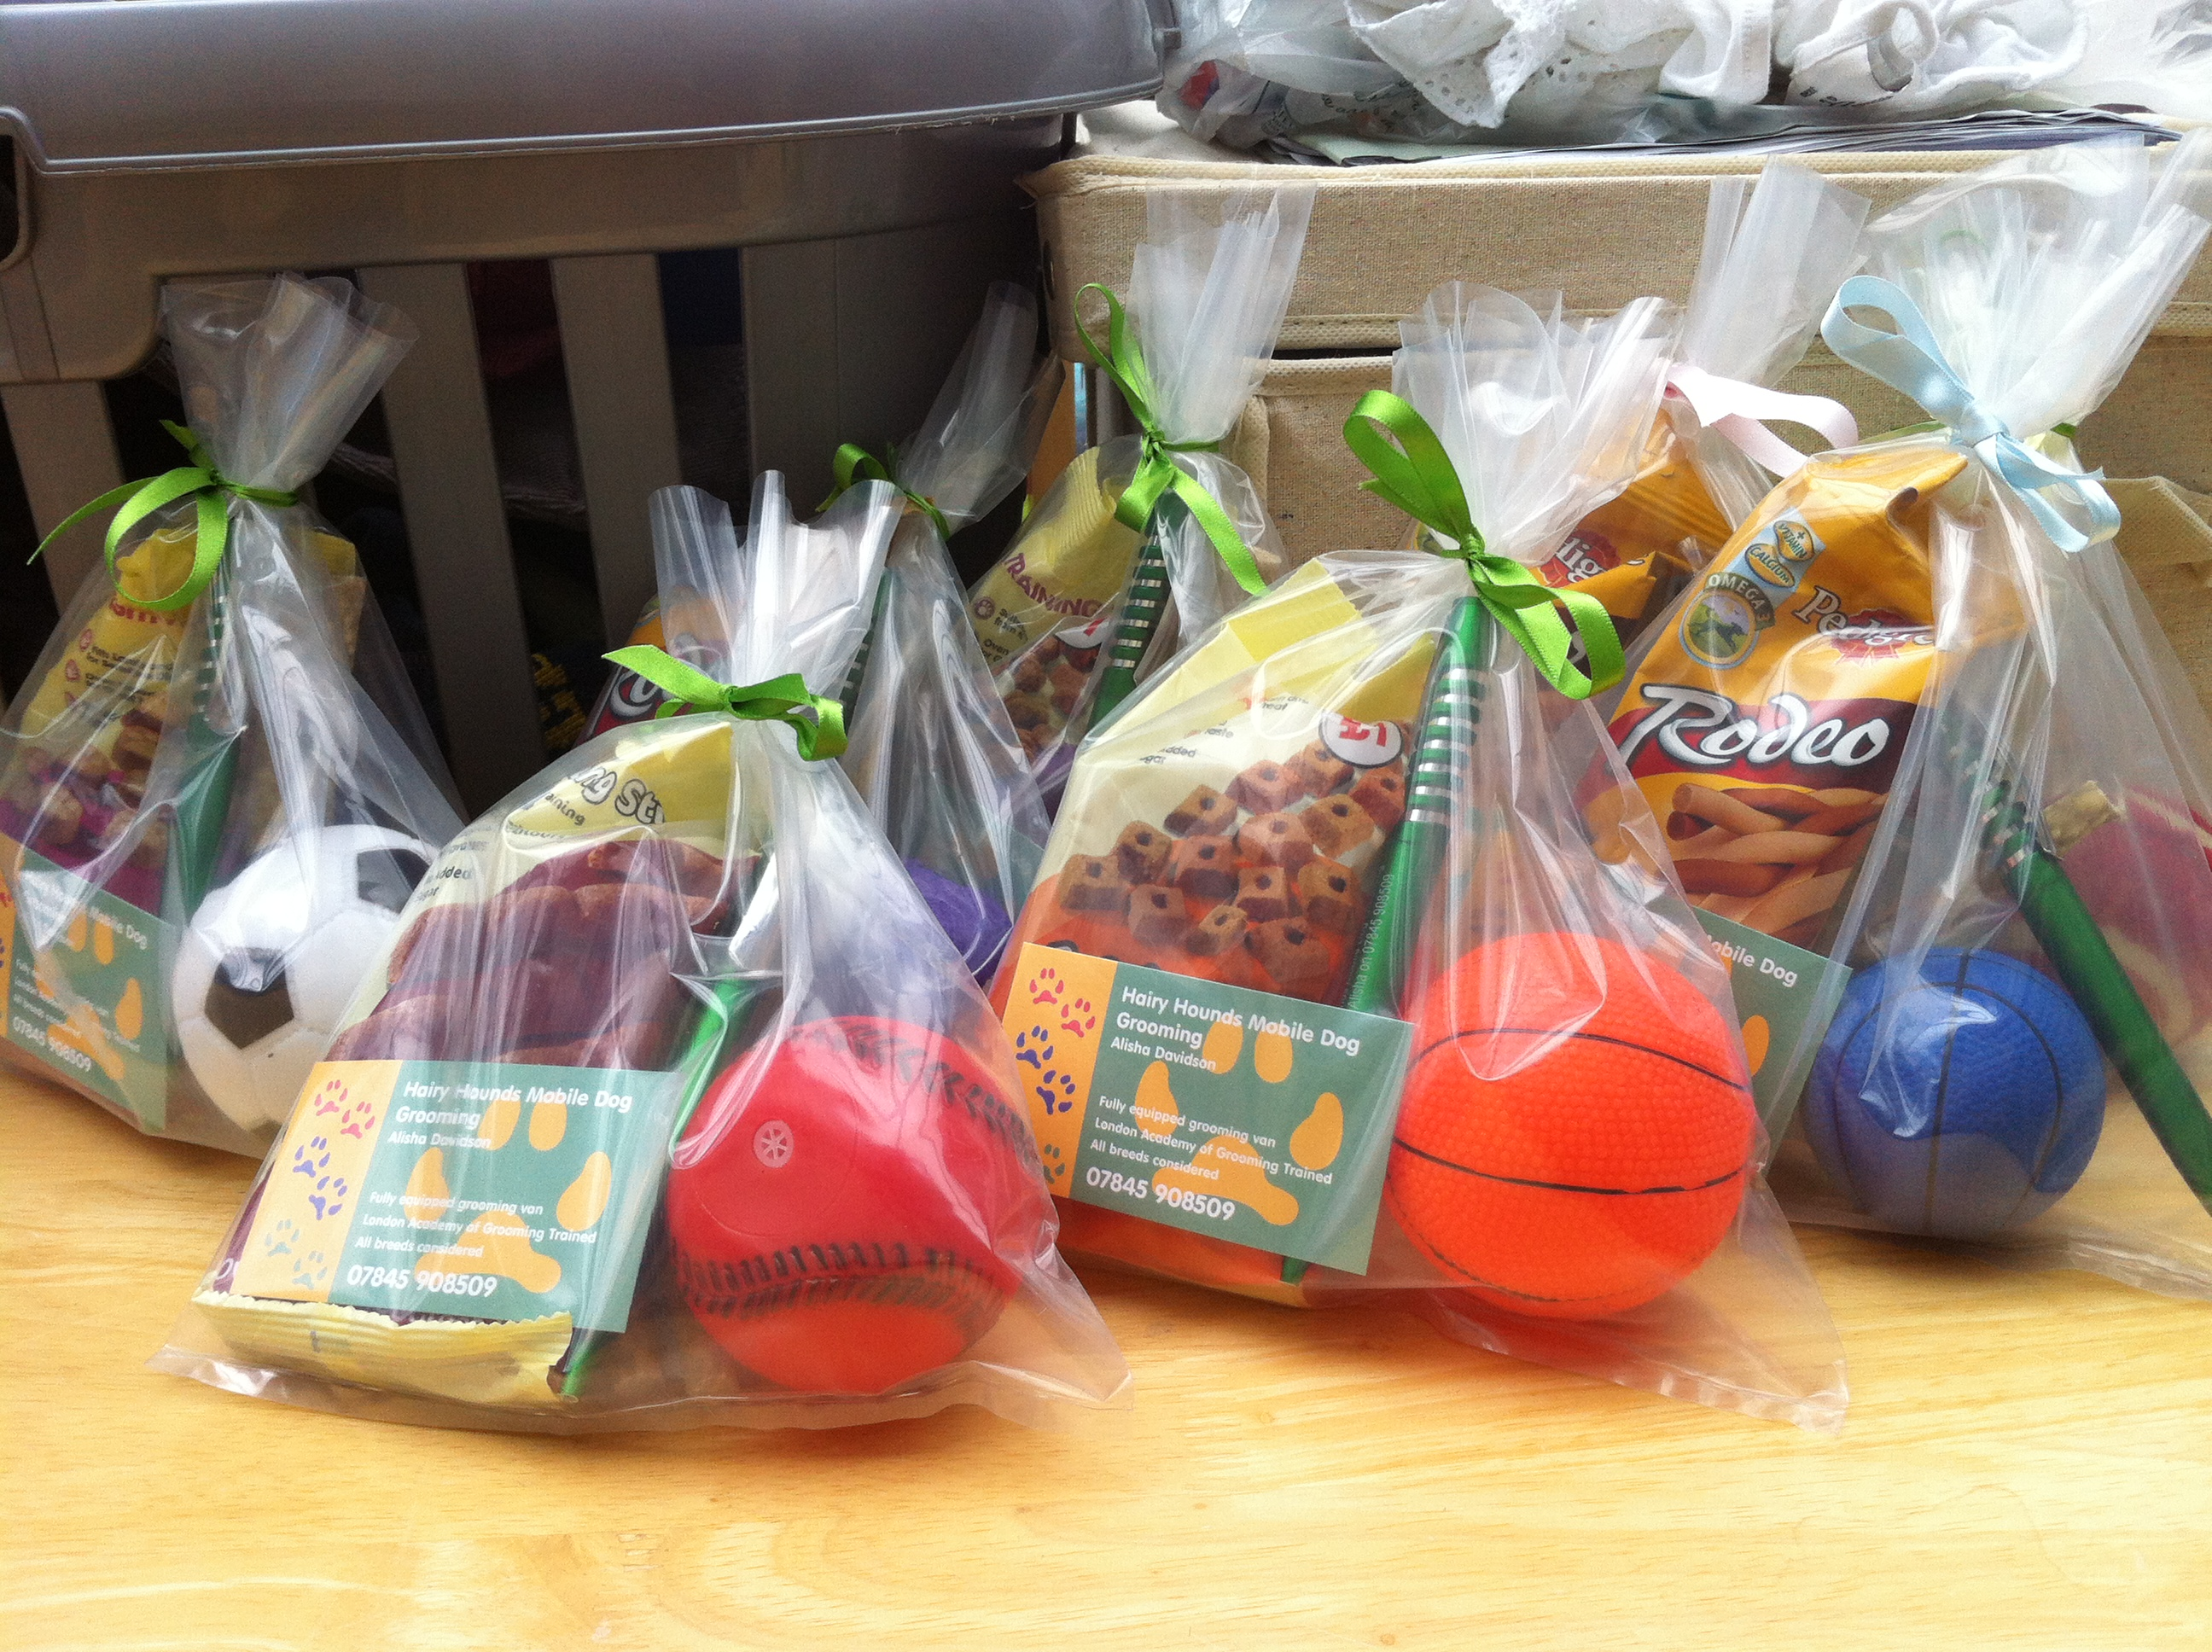 Prizes for a local dog show